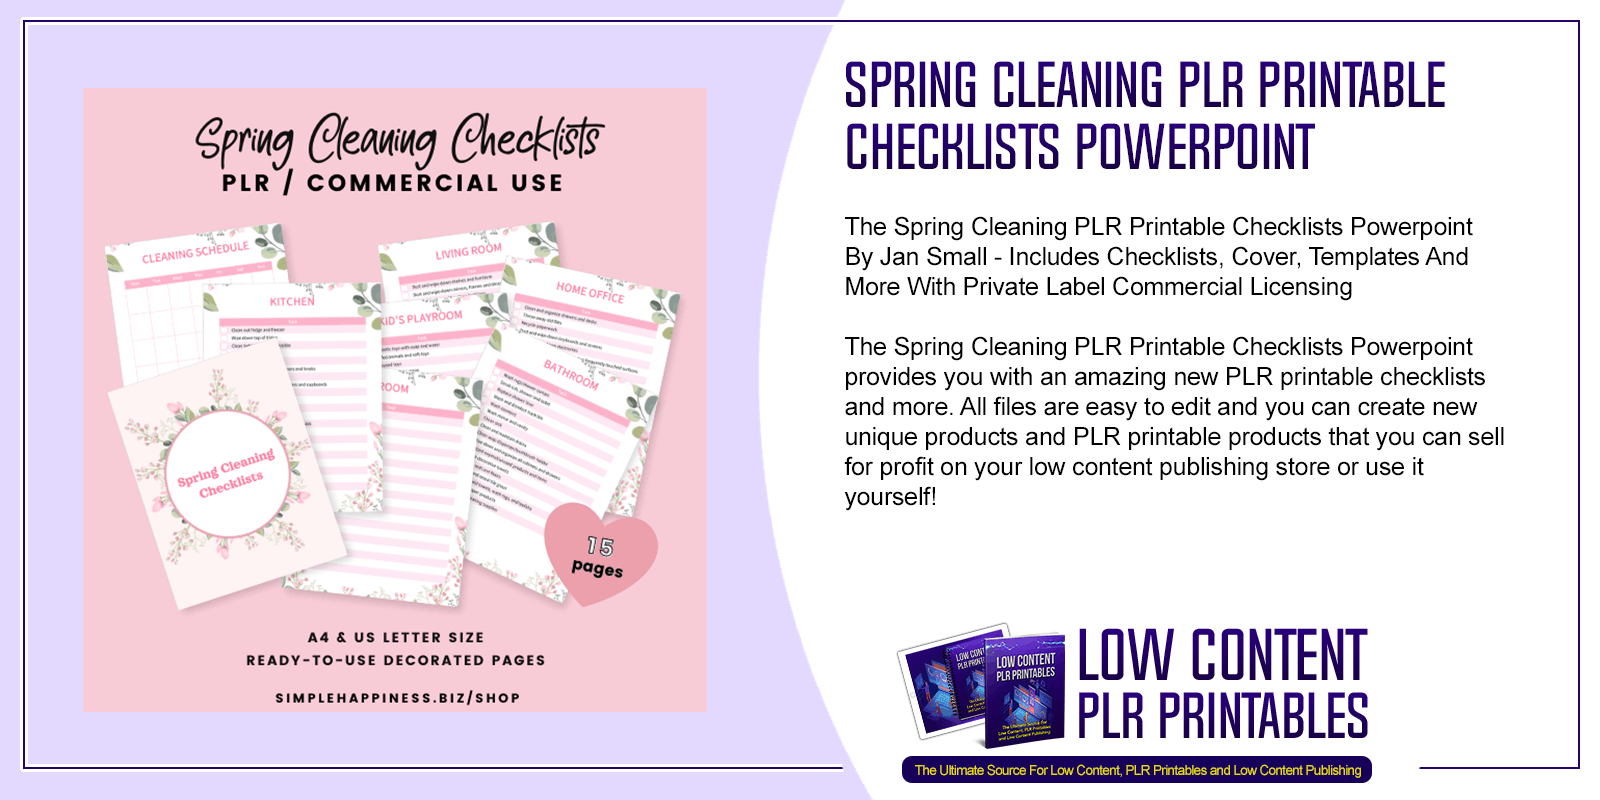 Spring Cleaning PLR Printable Checklists Powerpoint